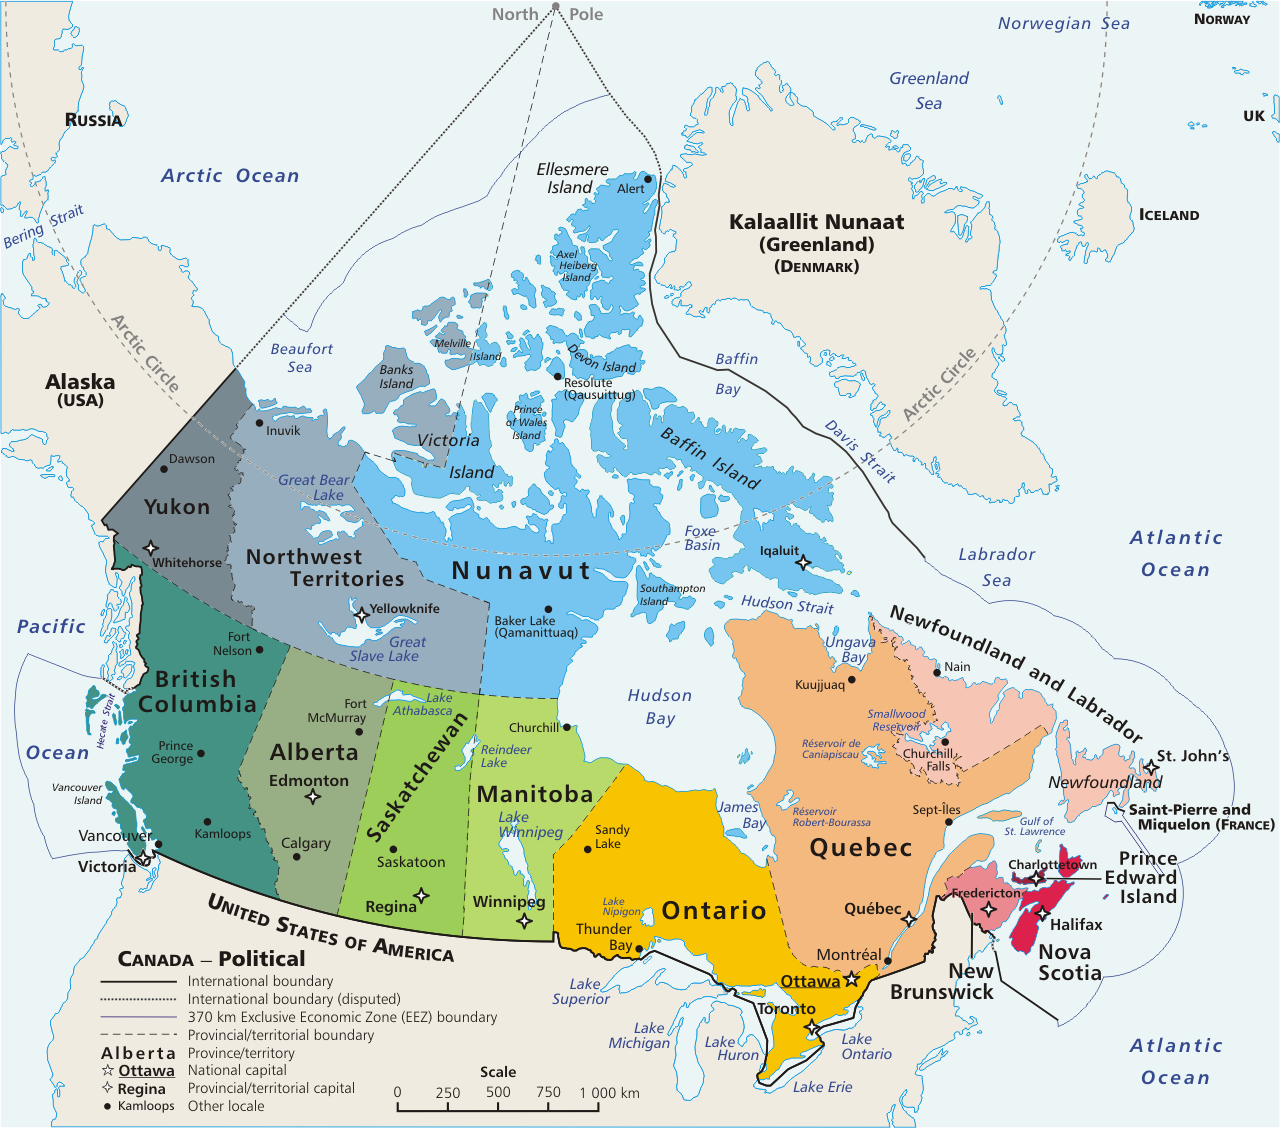 Canada Political Map File:Map Canada political geo.png   Wikipedia Canada Political Map